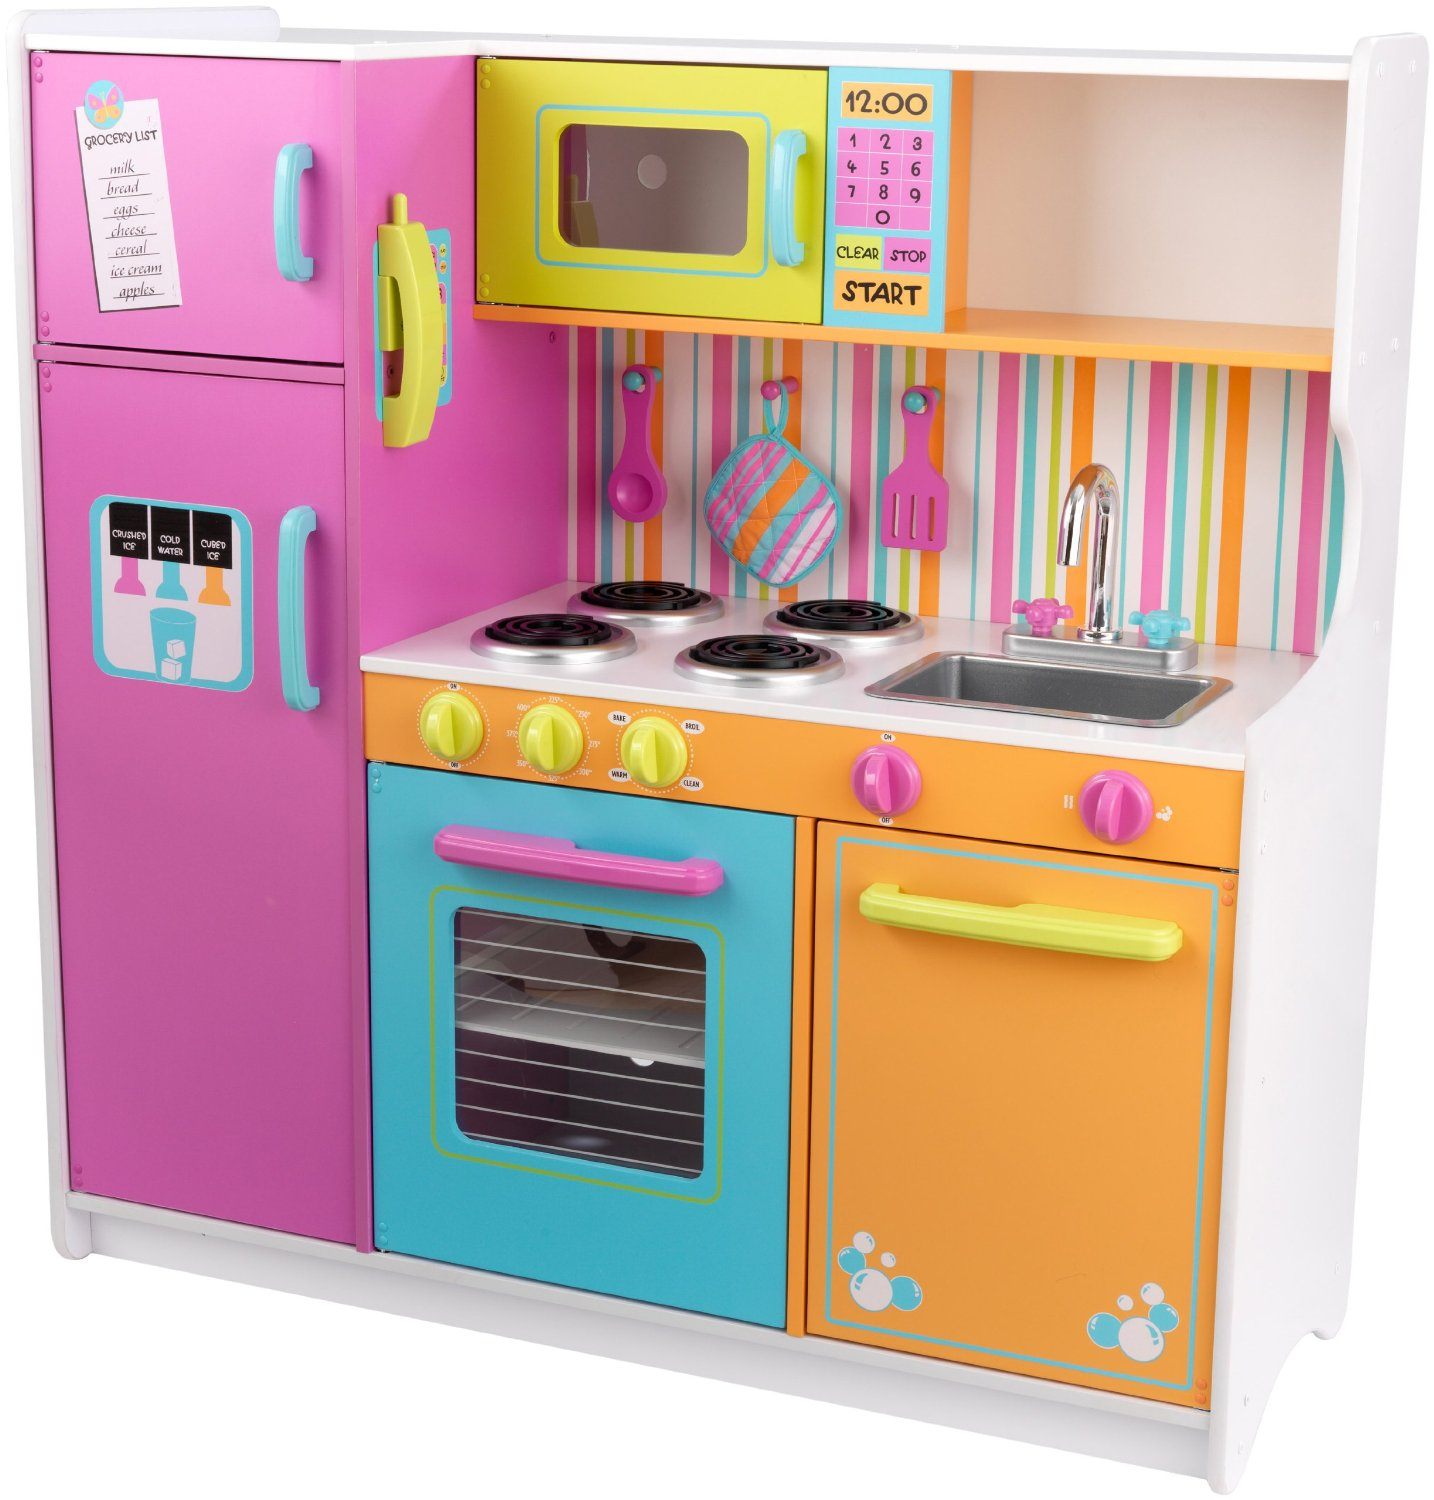 10 photos to Kids kitchen stool  sc 1 st  Kitchen ideas & Kids kitchen stool u2013 Kitchen ideas islam-shia.org